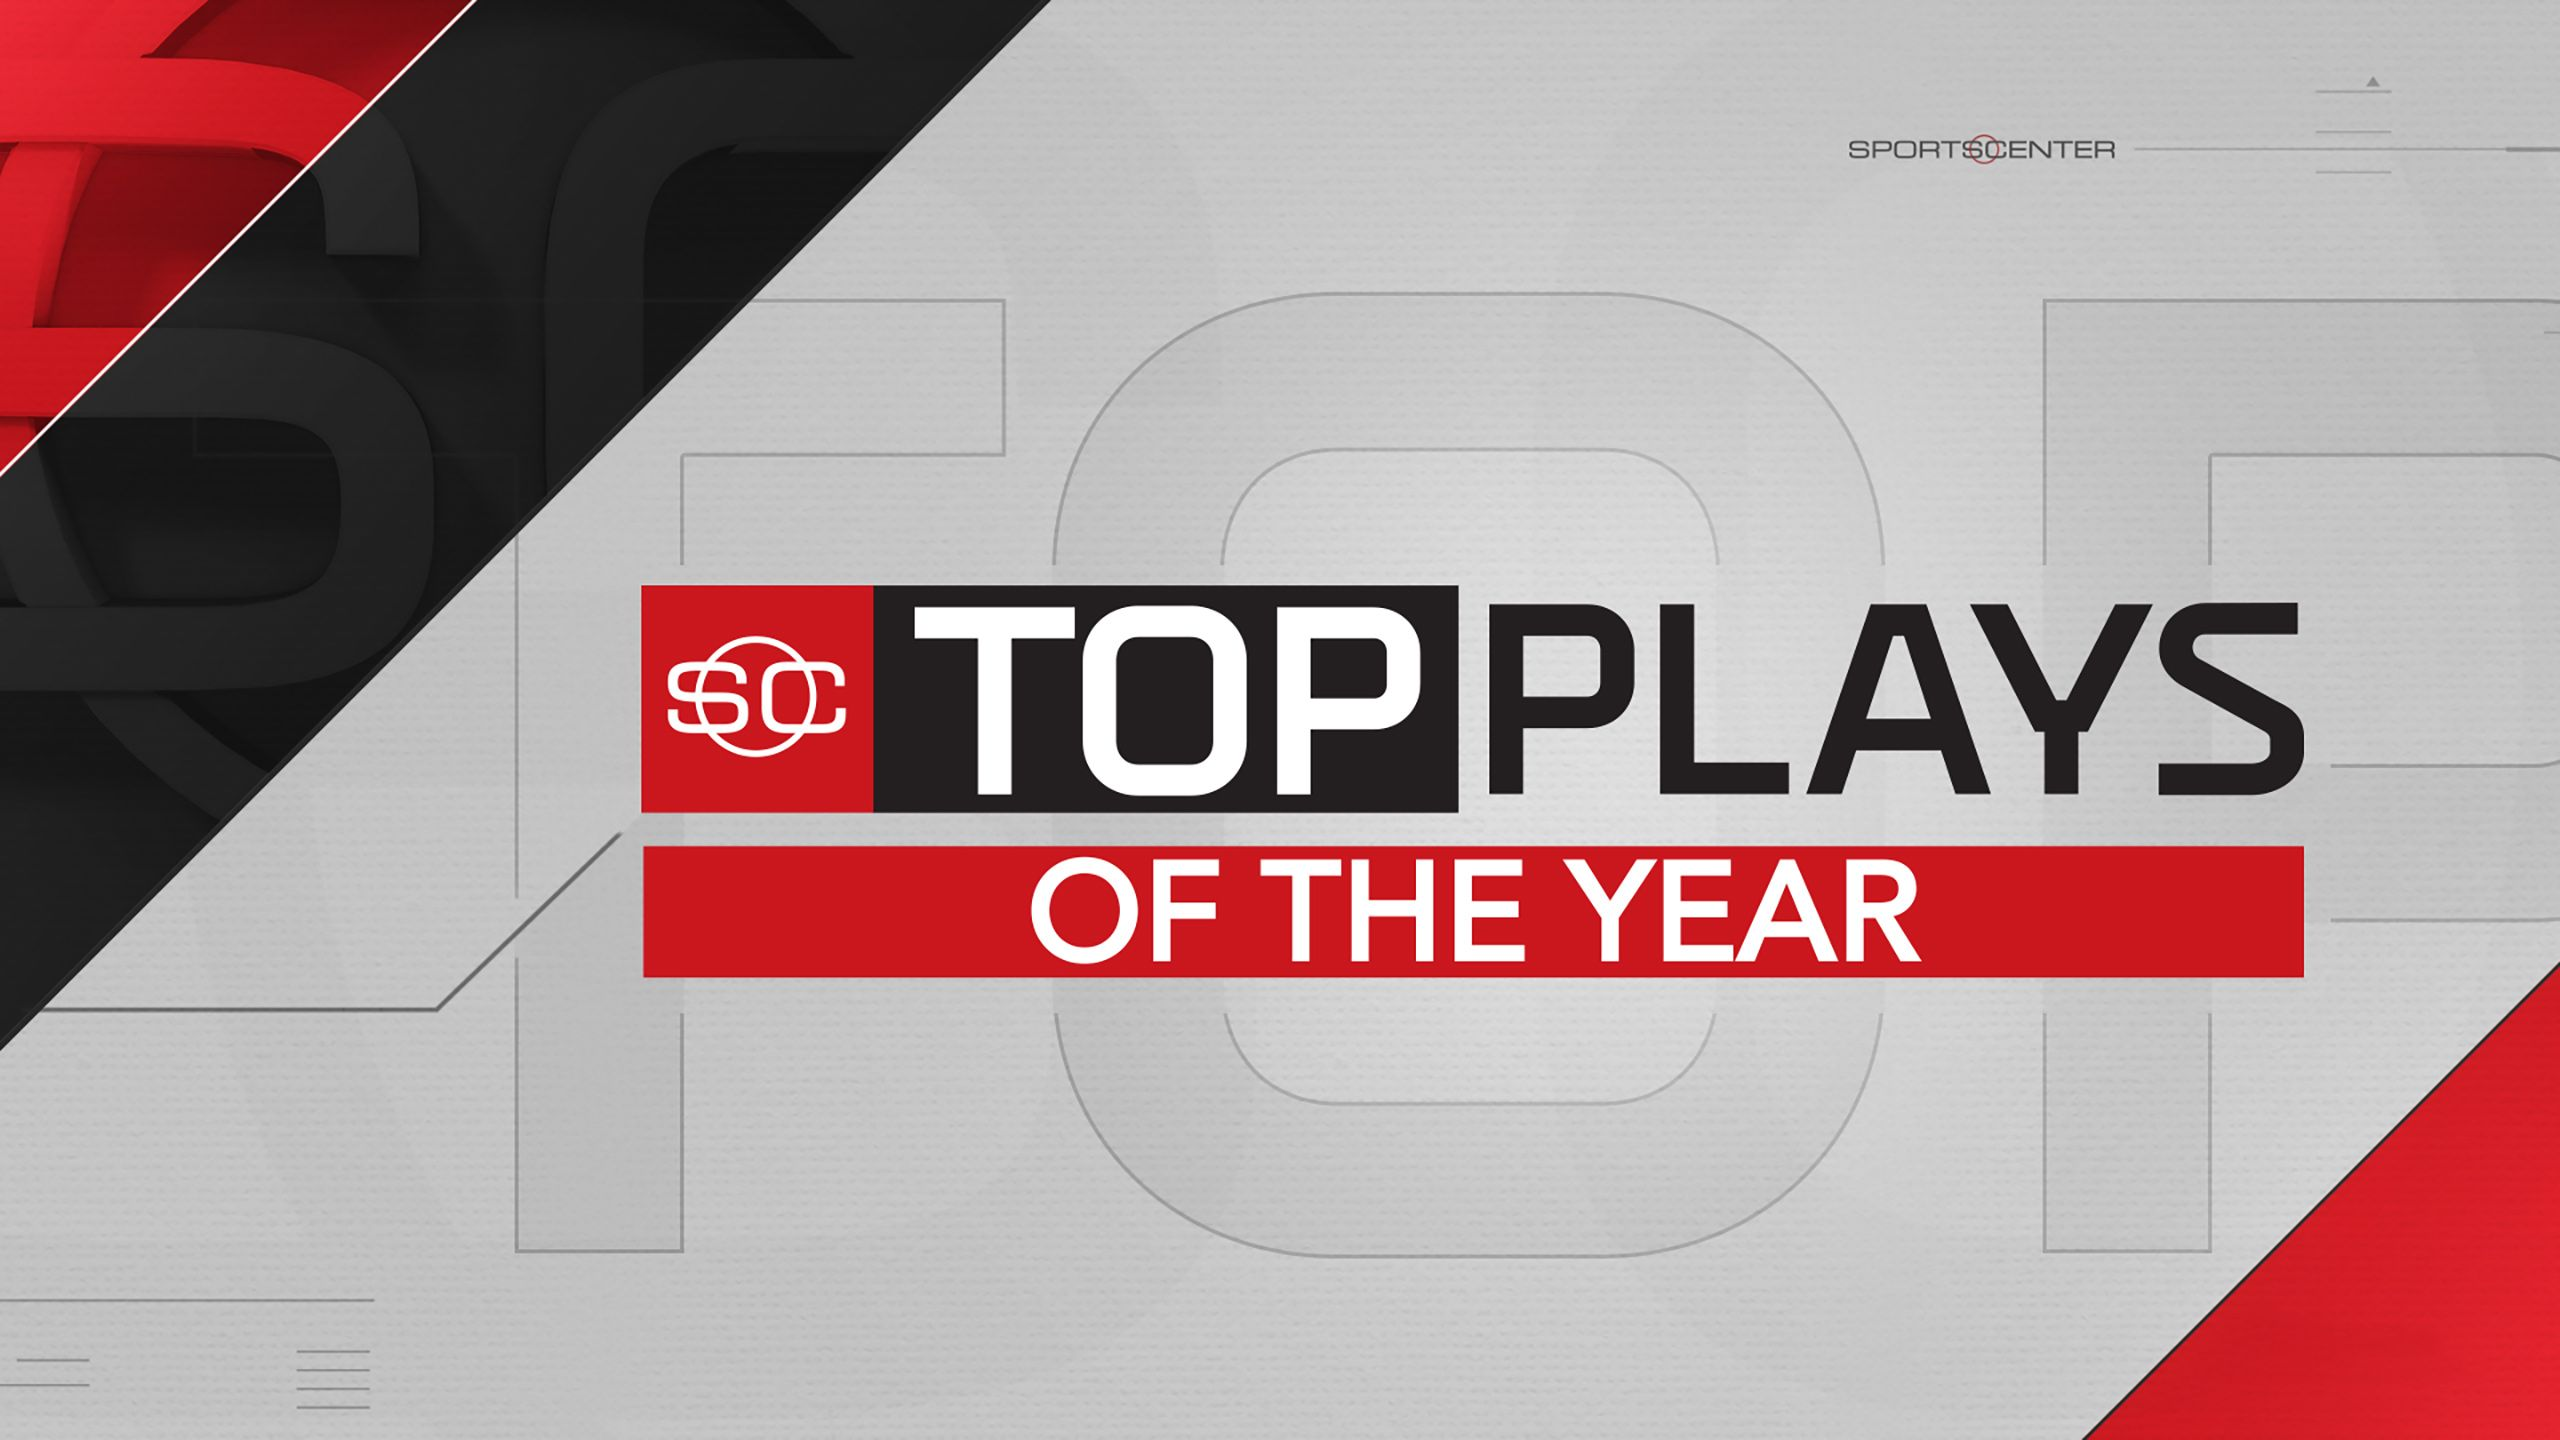 SC Top Plays of the Year